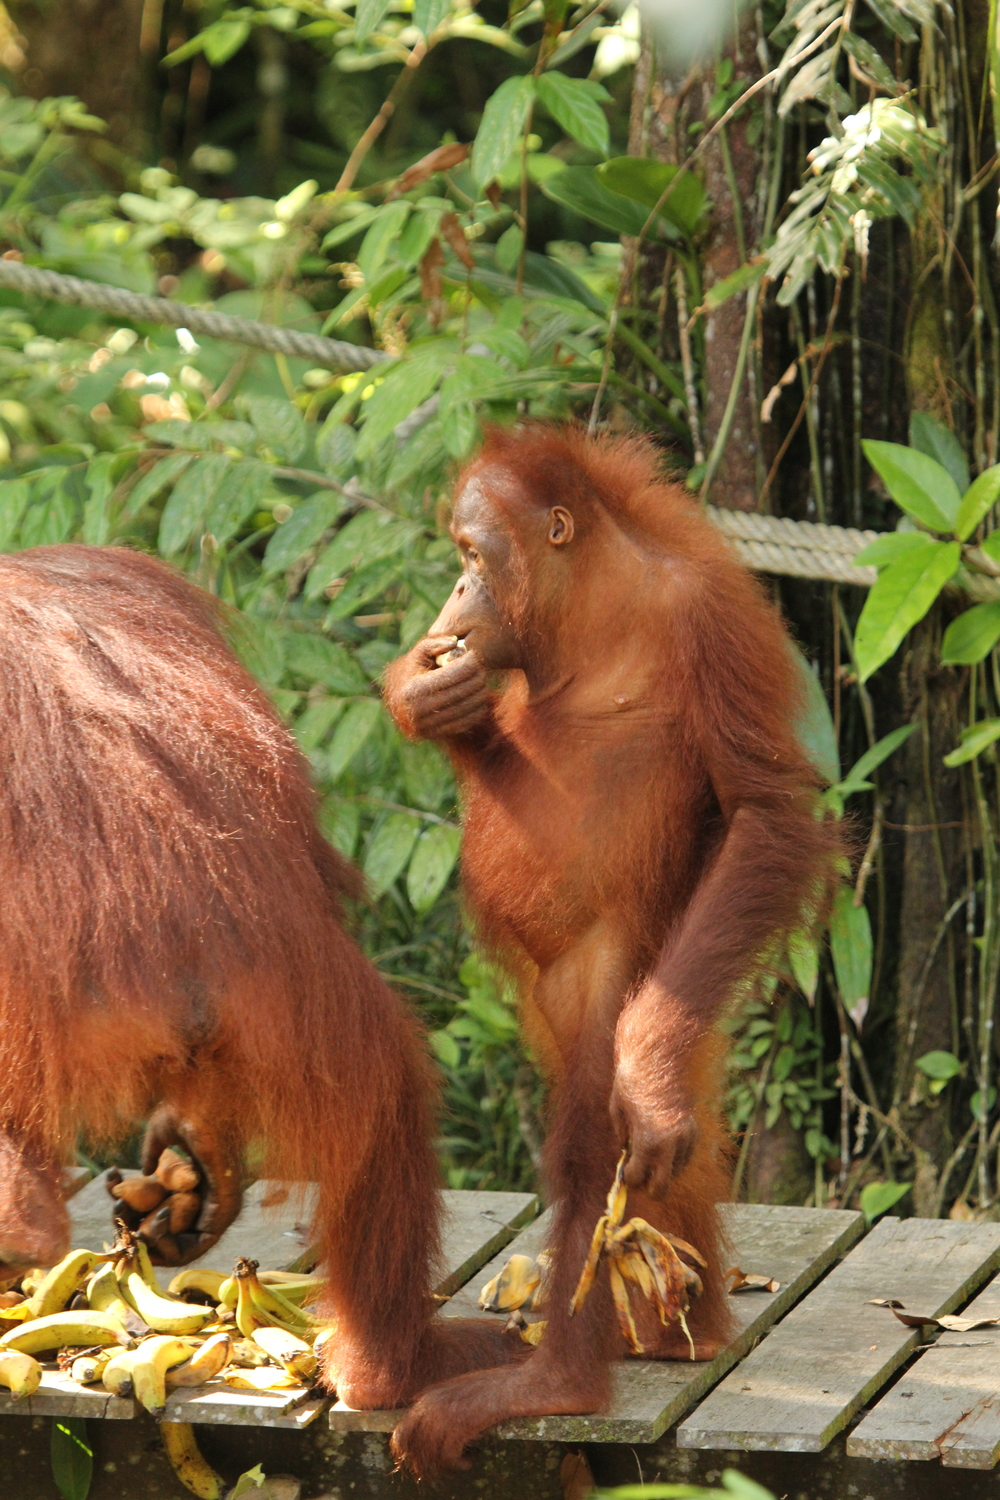 Admittedly, there are some pretty awesome mammals in Sarawak as well. Sometimes the orangutans (orang = man, utan = forest) seem a little too human-like.  photo credit: Jackie Childers